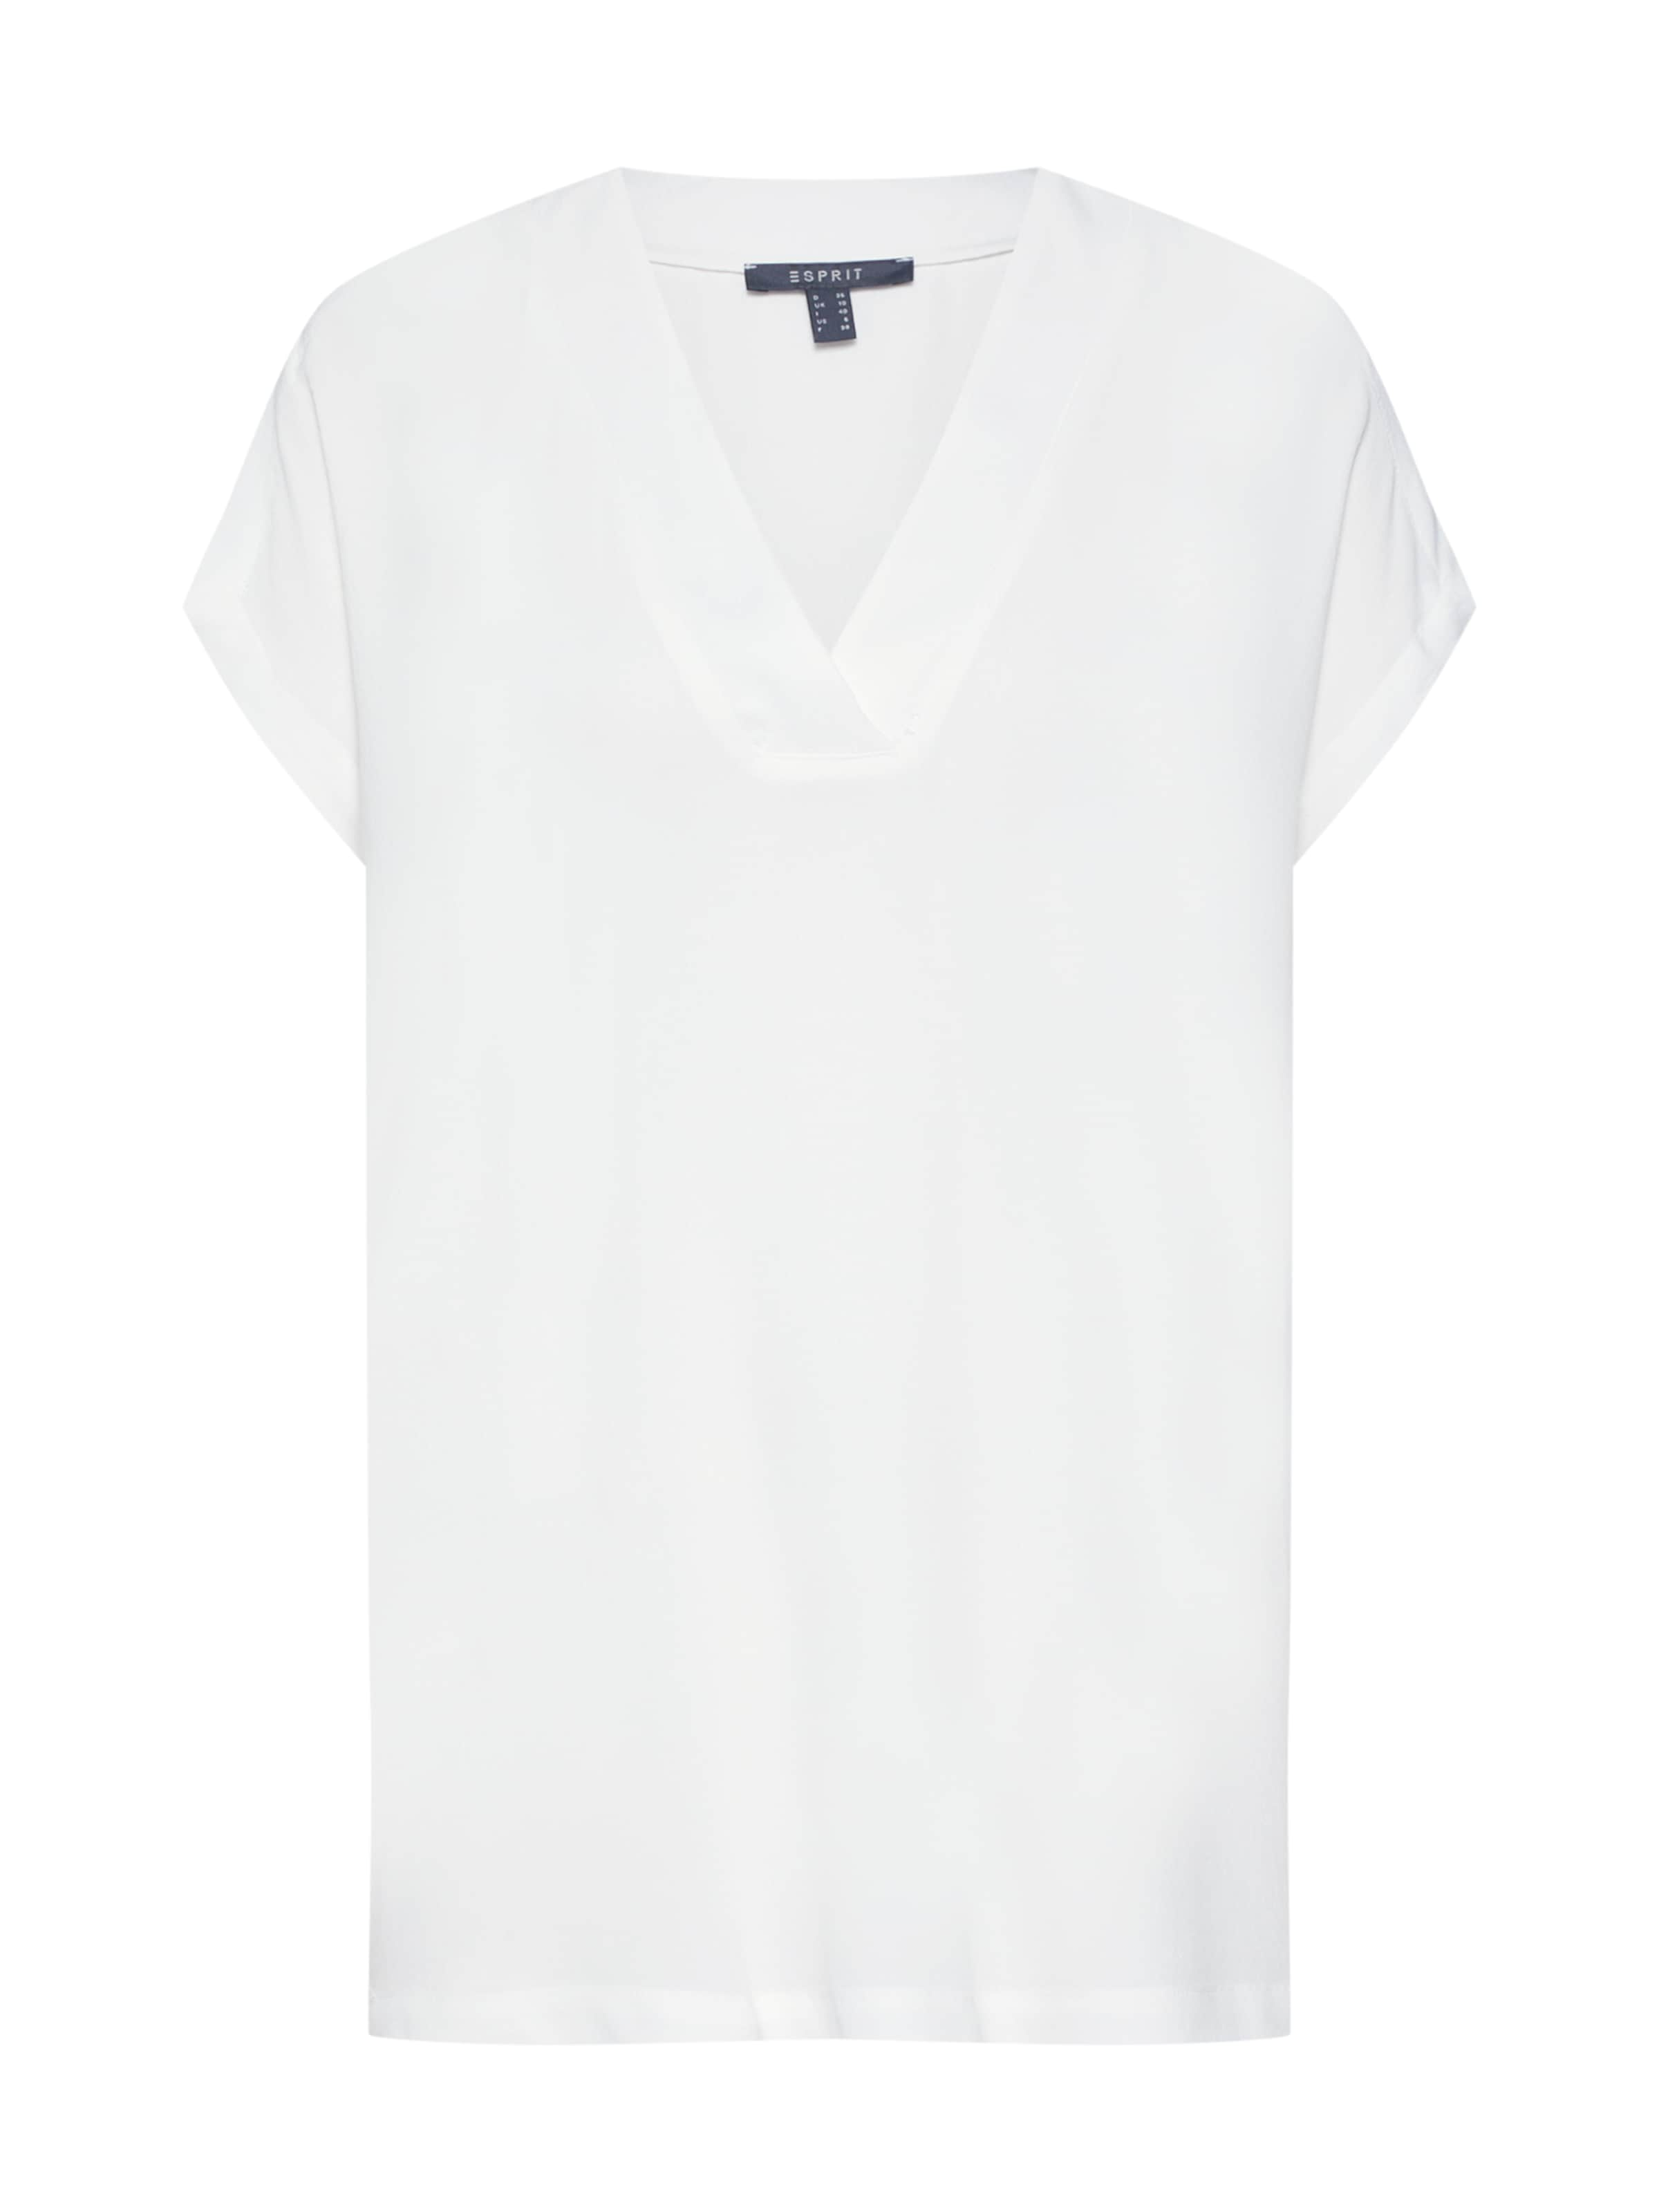 Blusenshirt Fluid Offwhite 'new Visco' Collection Esprit In yO8wNv0mnP